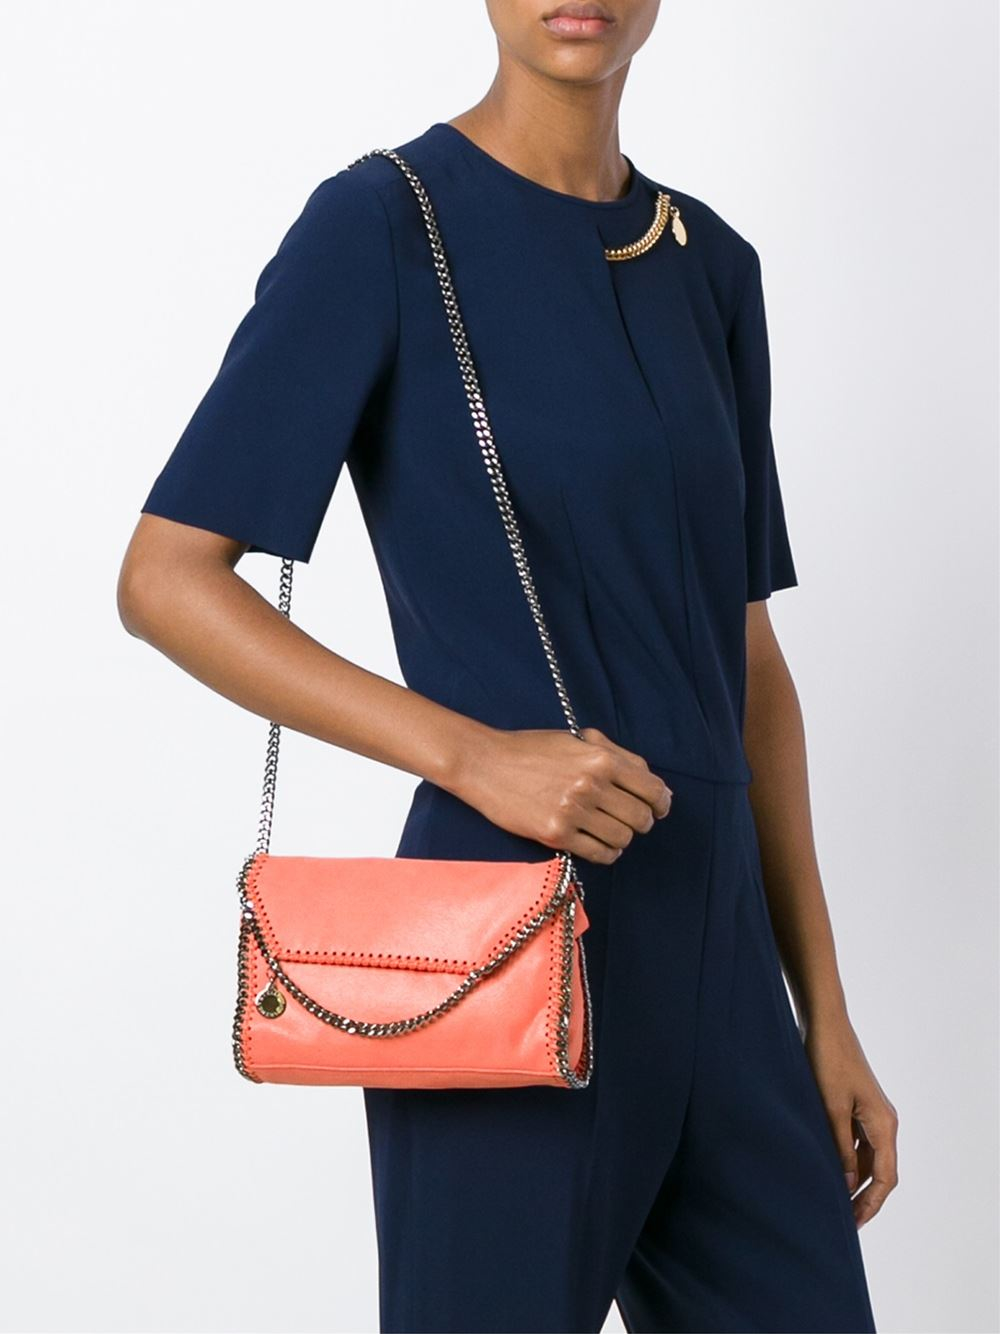 bef7ab363faa Gallery. Previously sold at  TESSABIT · Women s Stella Mccartney Falabella  ...